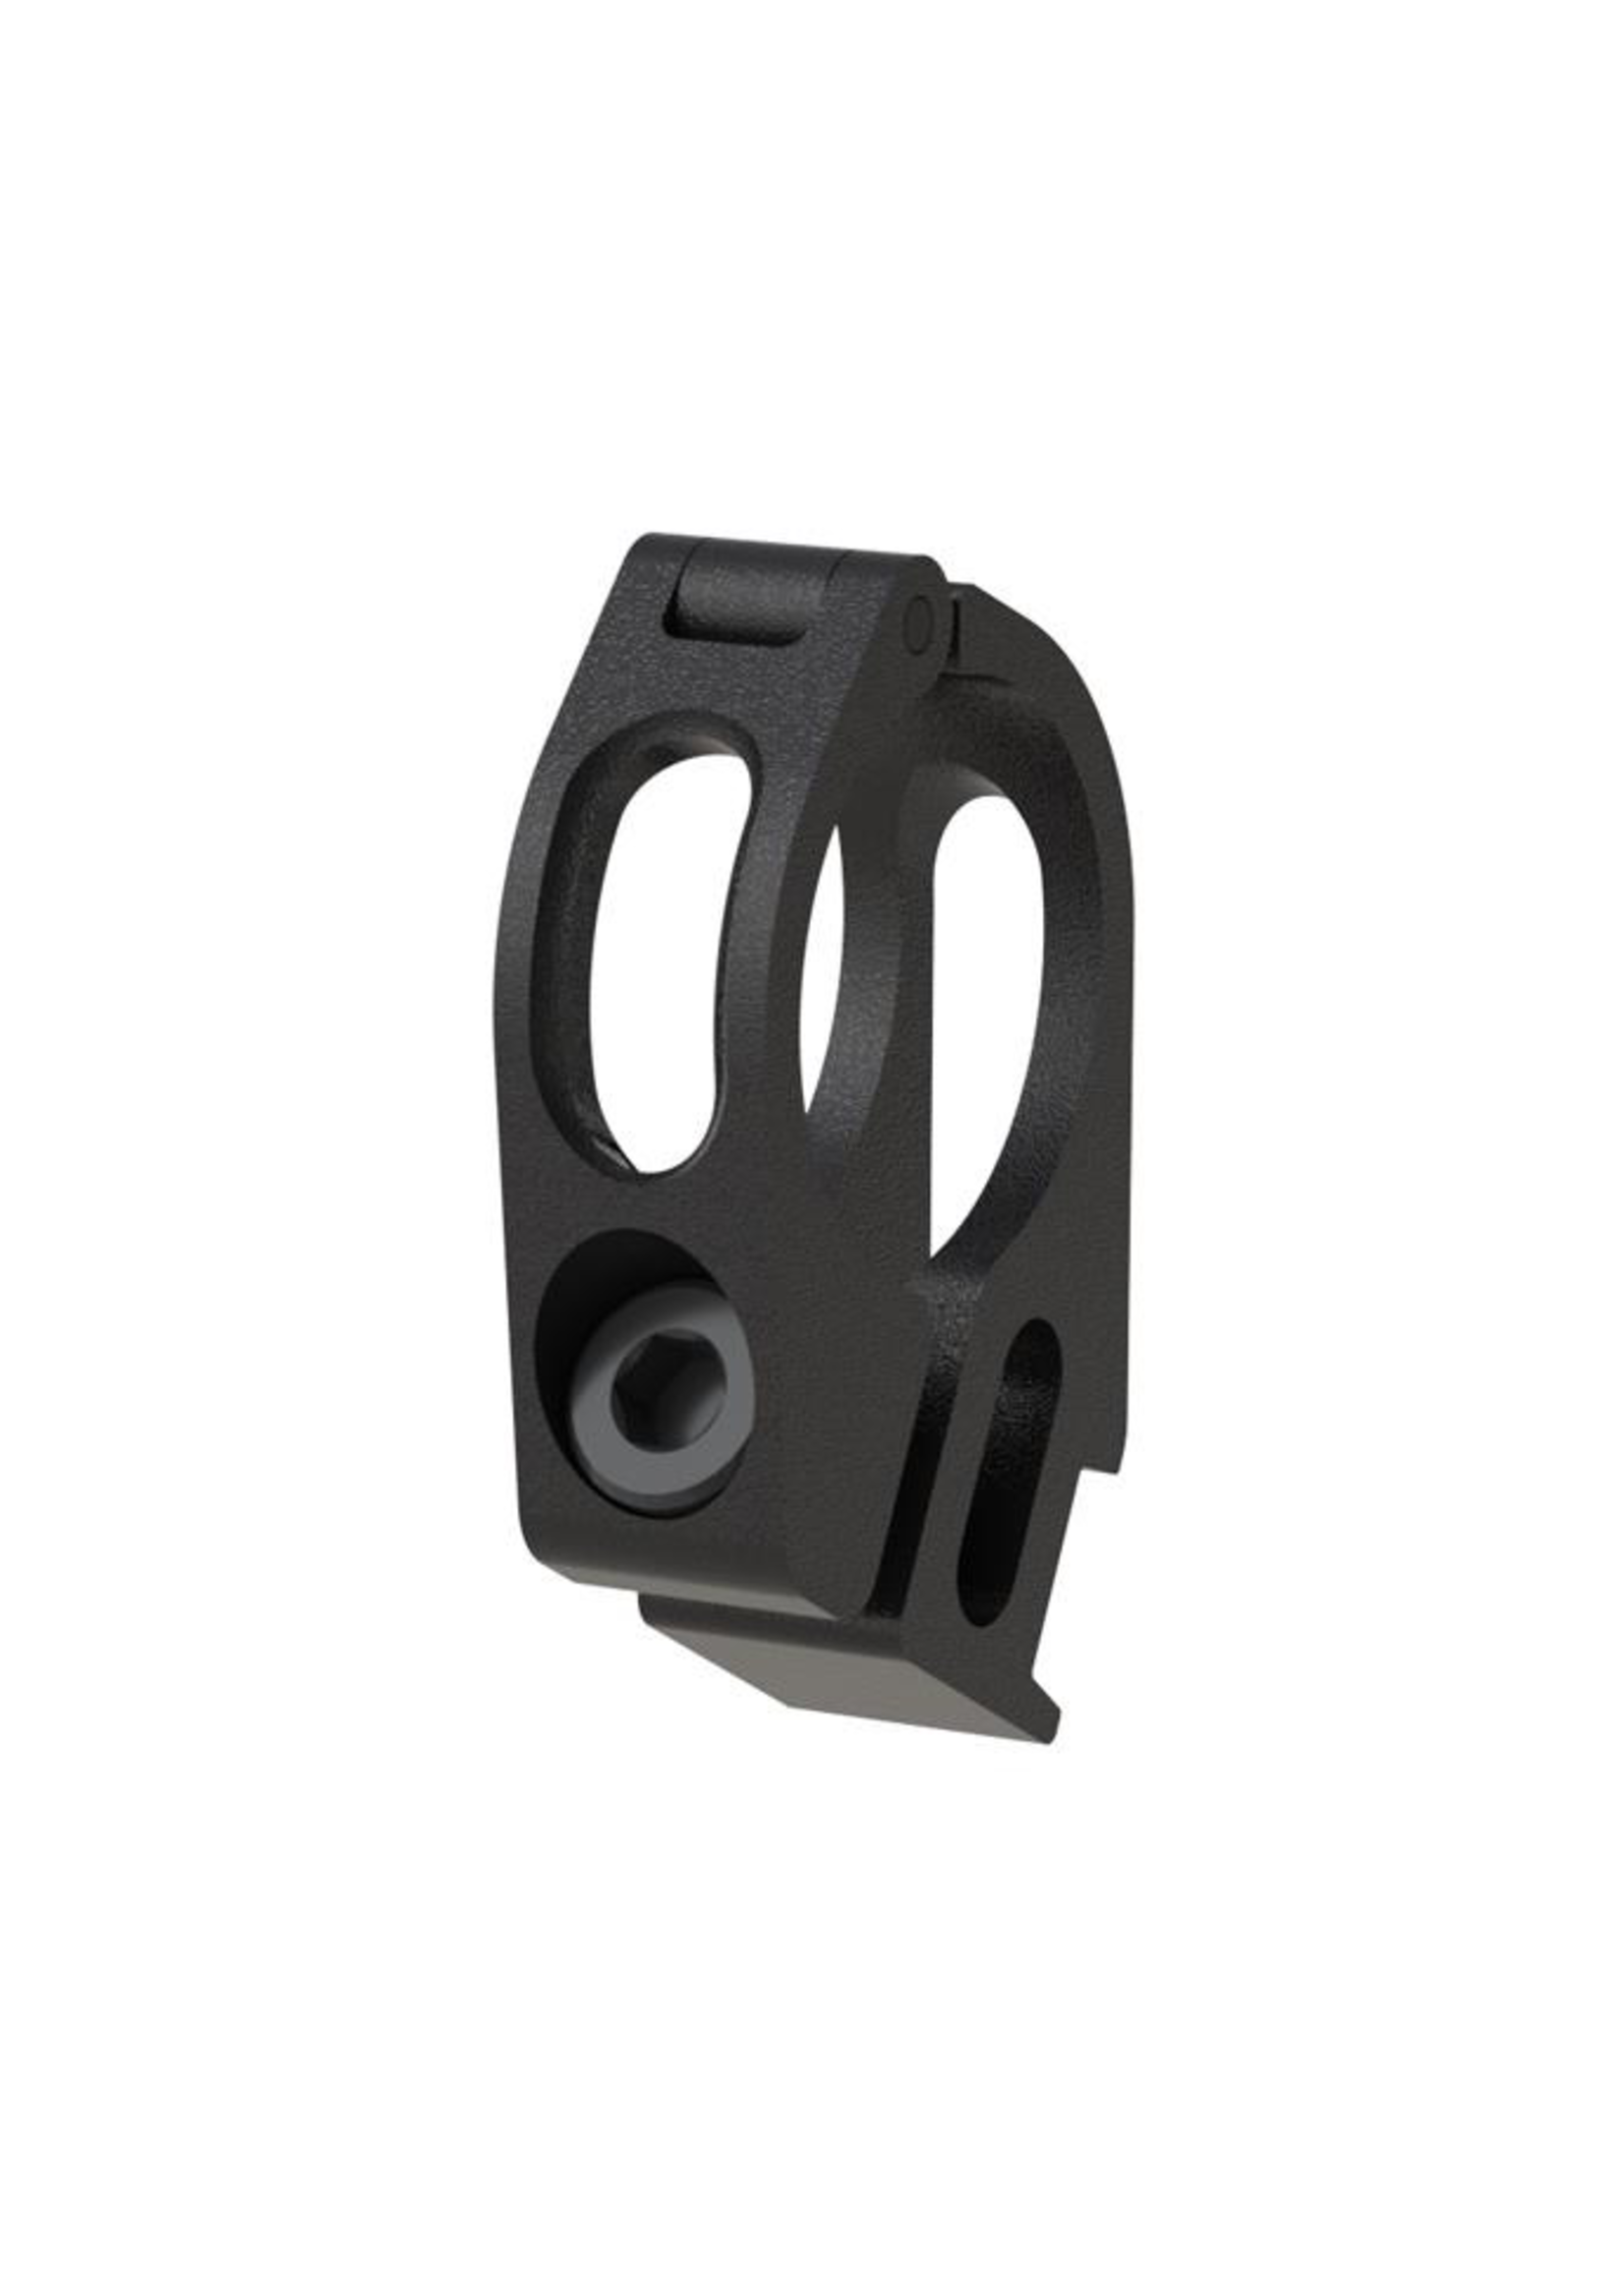 ONE UP - DROPPER REMOTE CLAMP 22.5 - V2